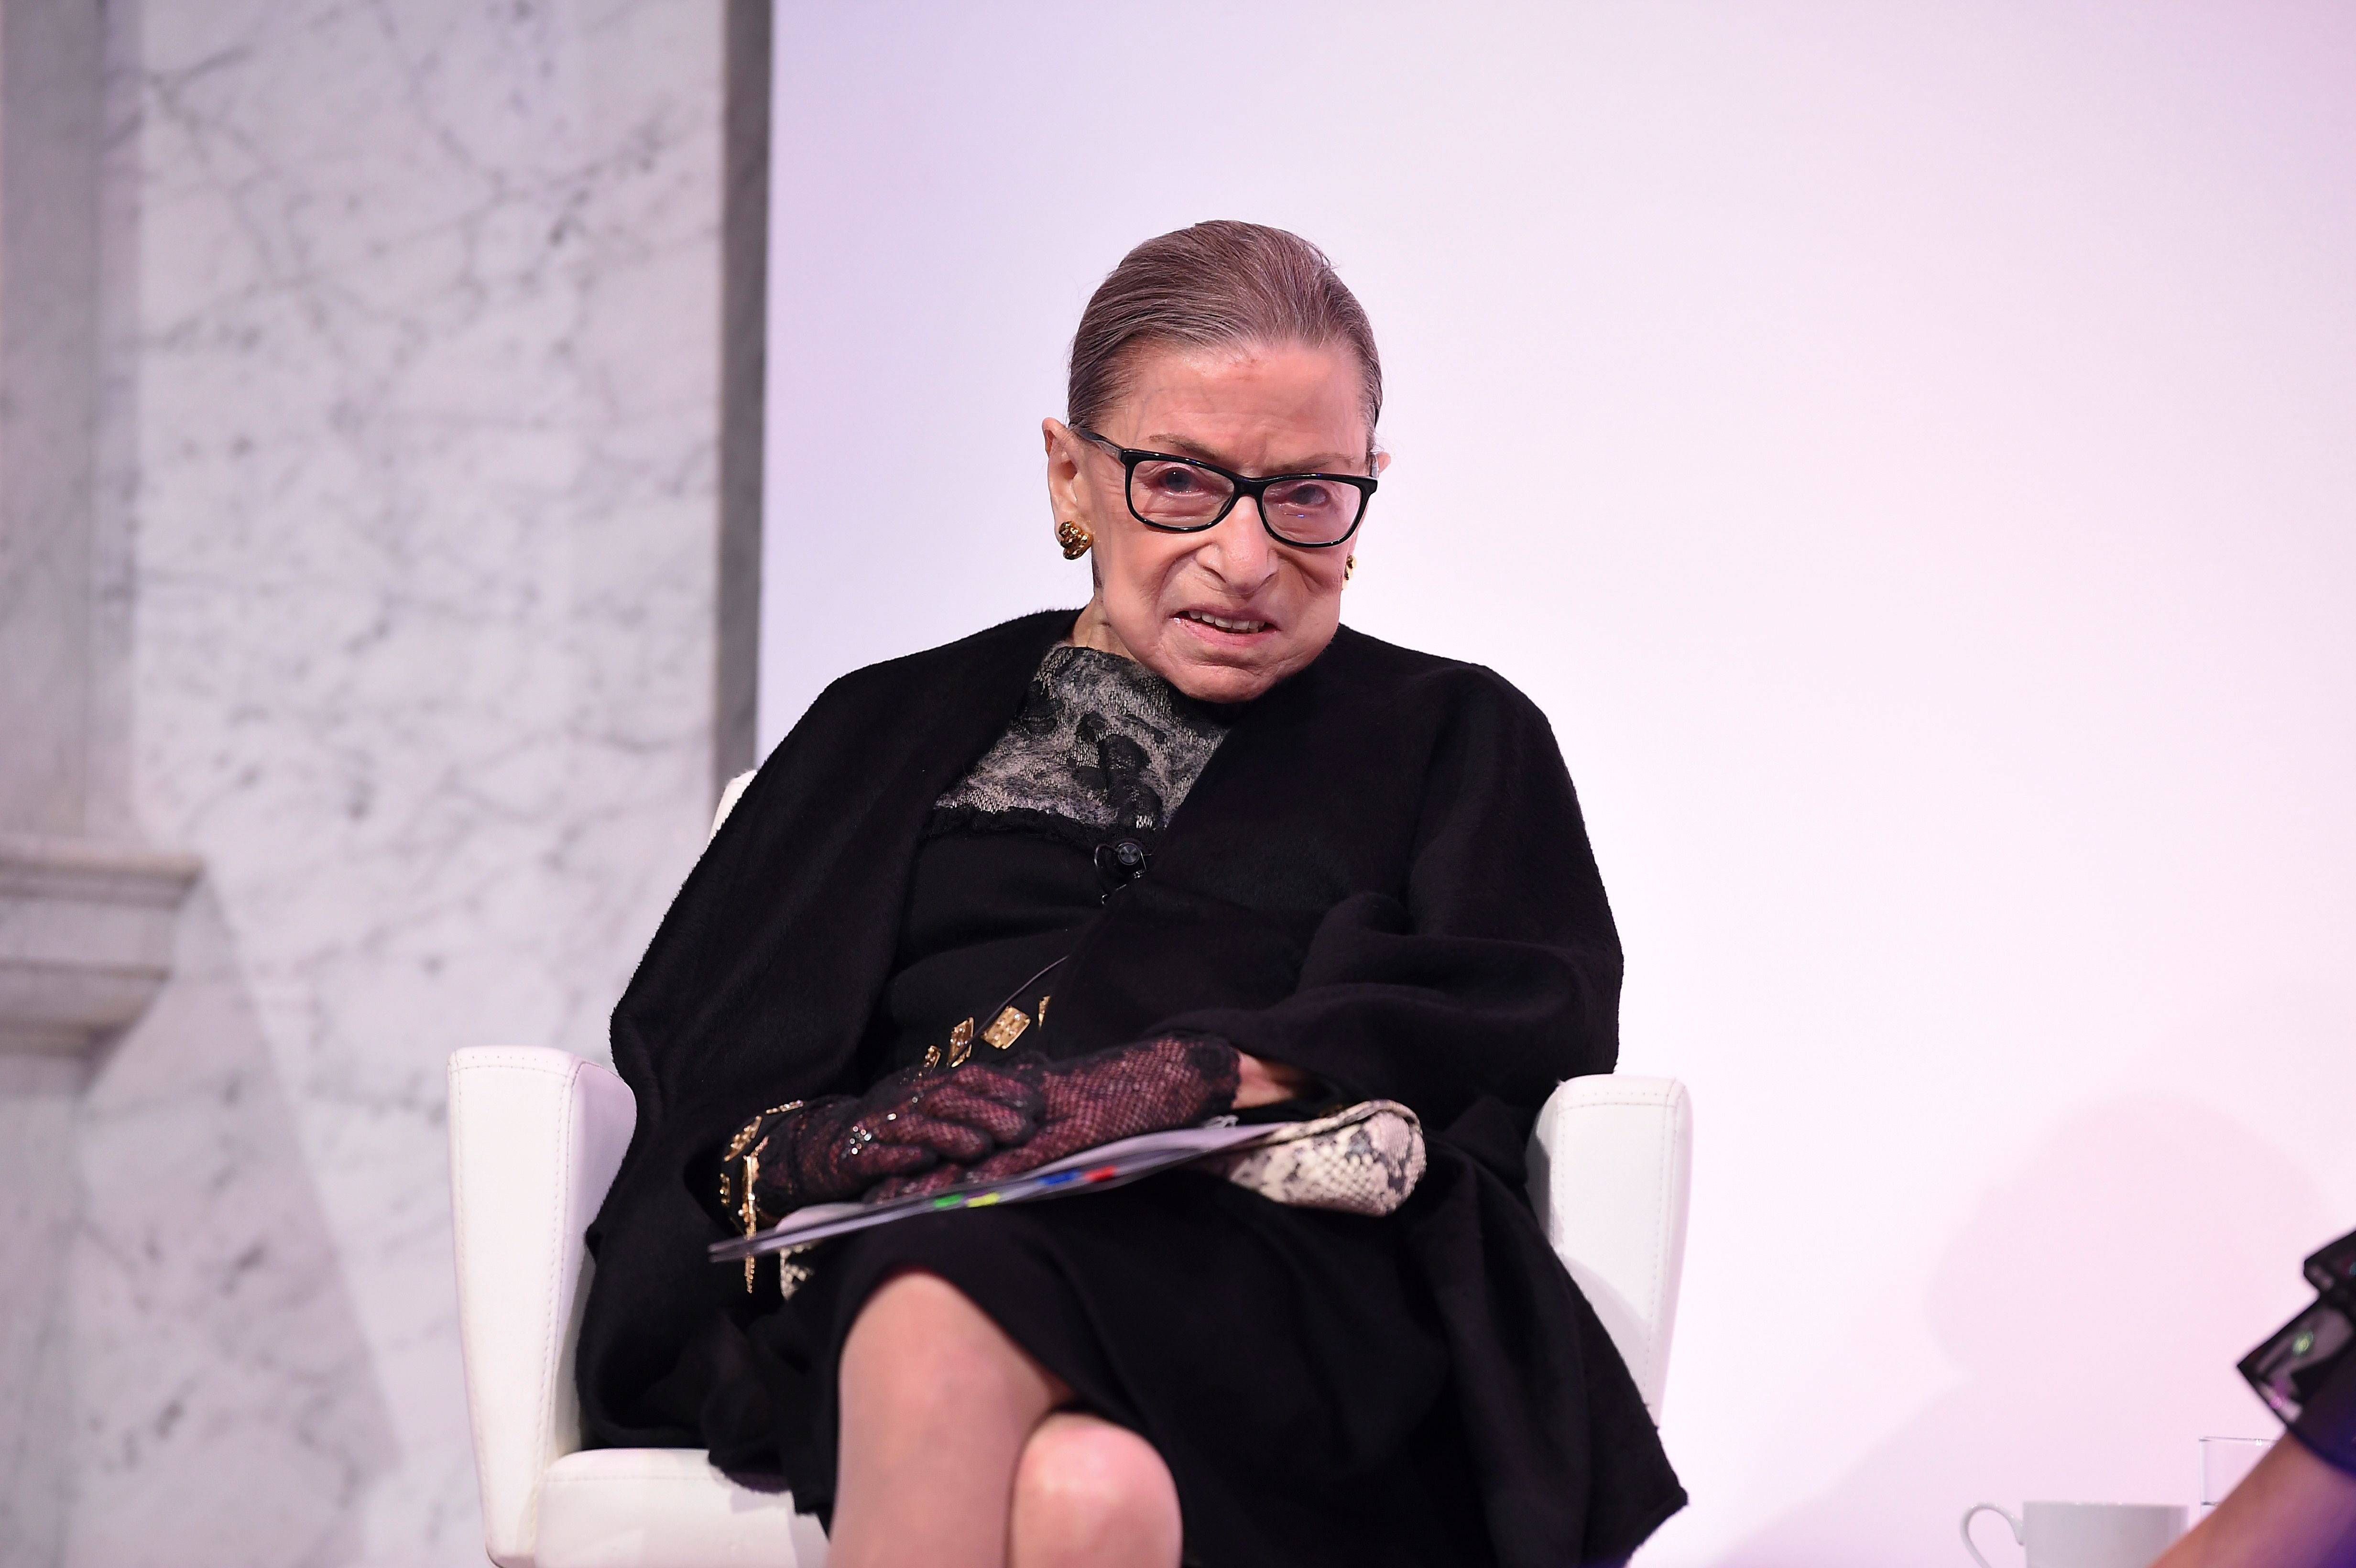 Supreme Court Justice Ruth Bader Ginsburg at the 2020 DVF Awards on February 19, 2020 | Photo: Getty Images